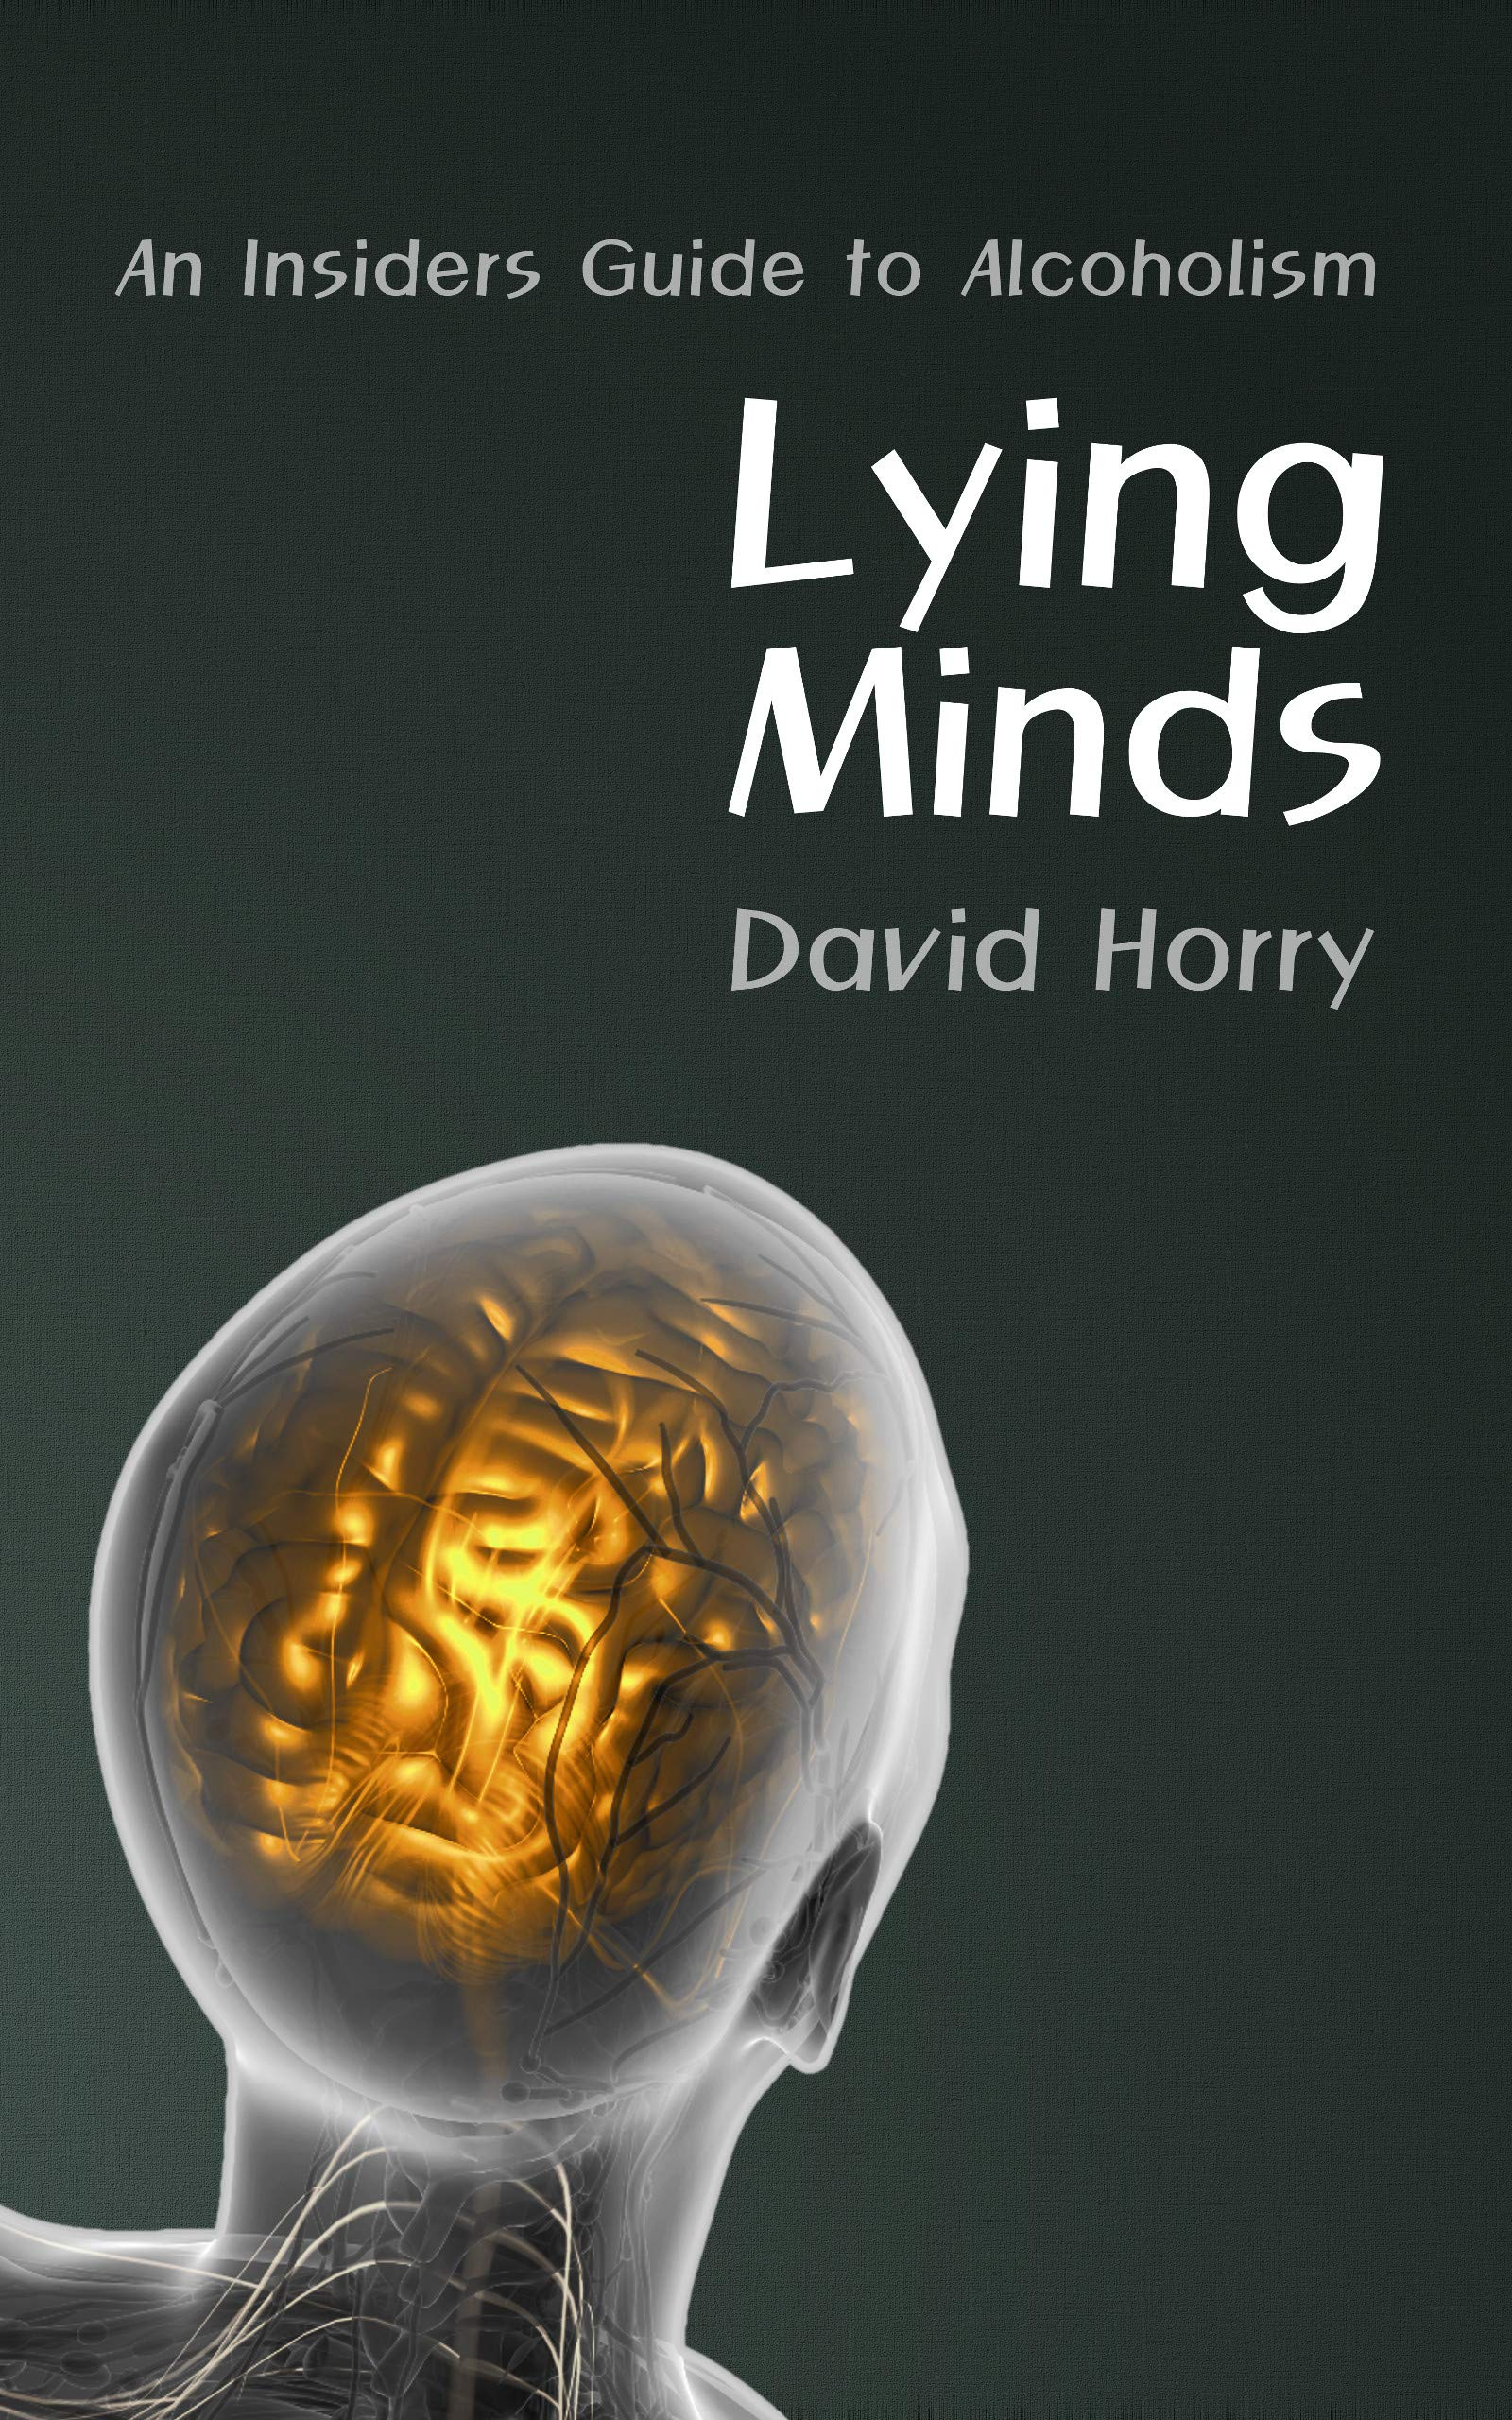 Image OfLying Minds: An Insiders Guide To Alcoholism (English Edition)